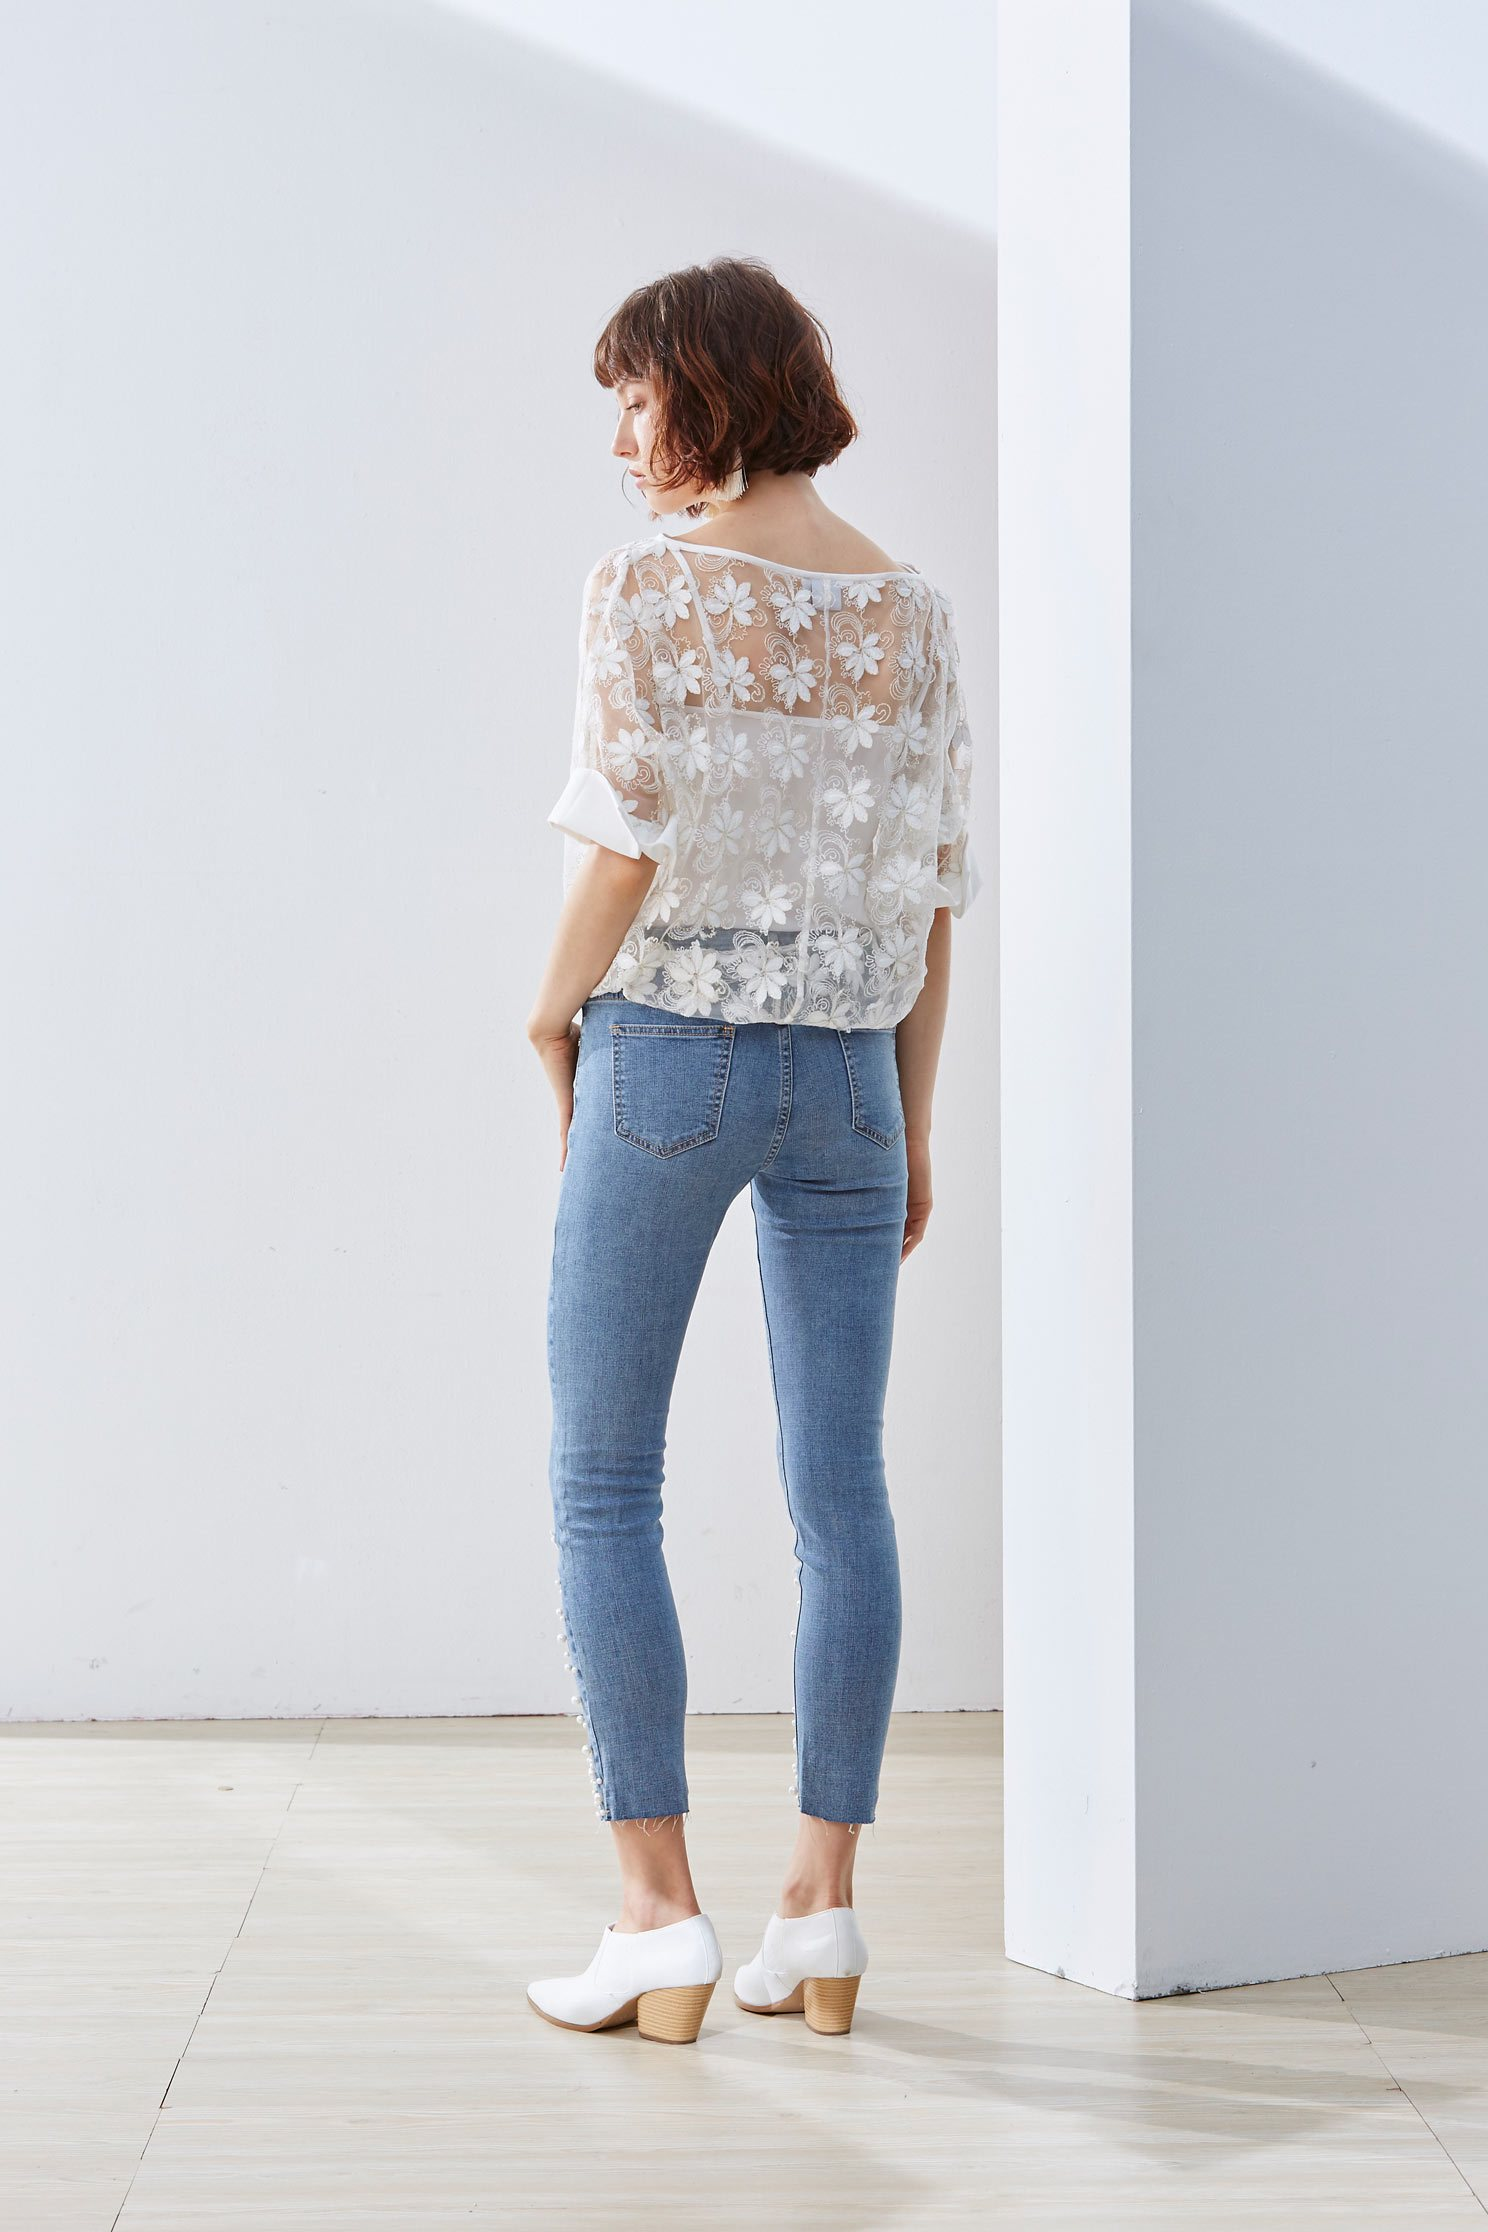 Temperament woman fashion top,Top,embroidery,刺繡上衣,白色上衣,embroidered,繡花上衣,Lace,Laced Top,透膚上衣,長袖上衣,Girlfriends spring tour